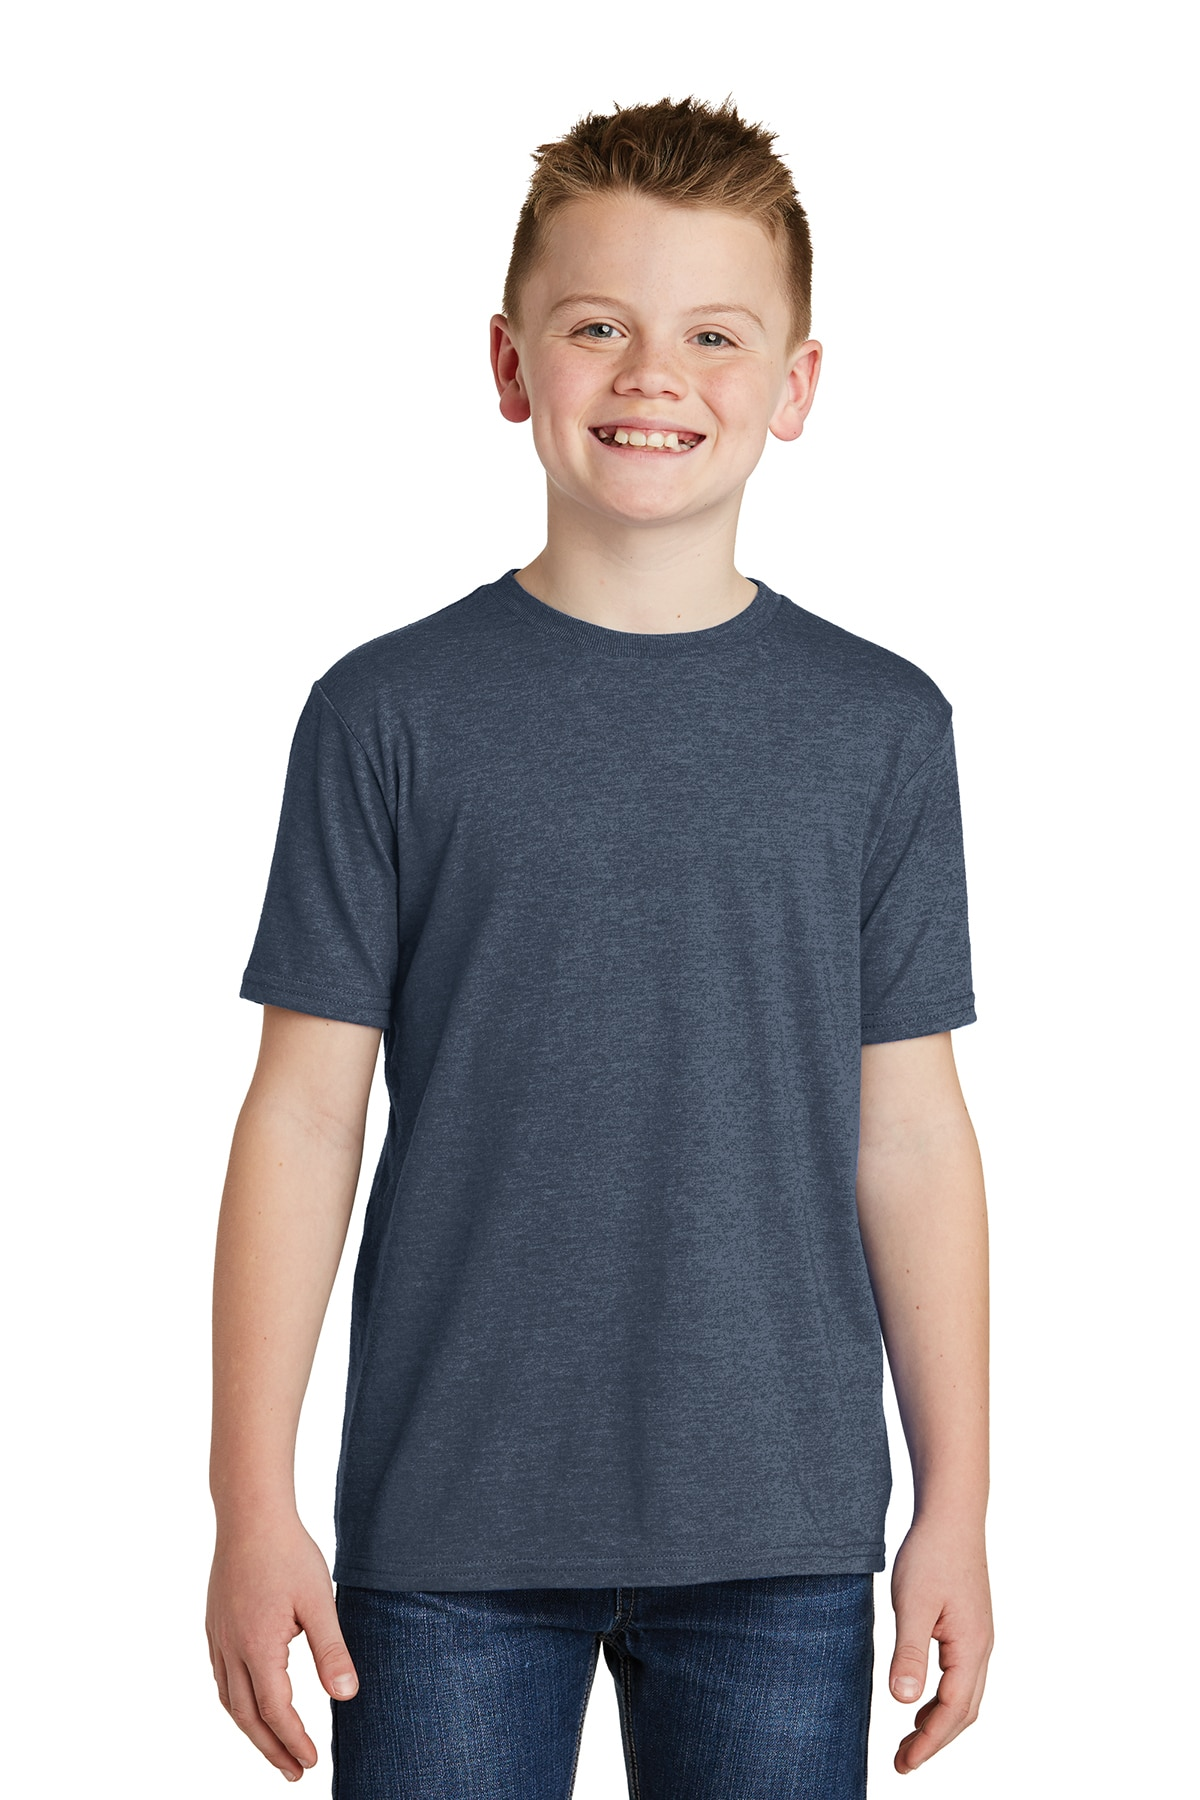 District Youth Very Important Tee